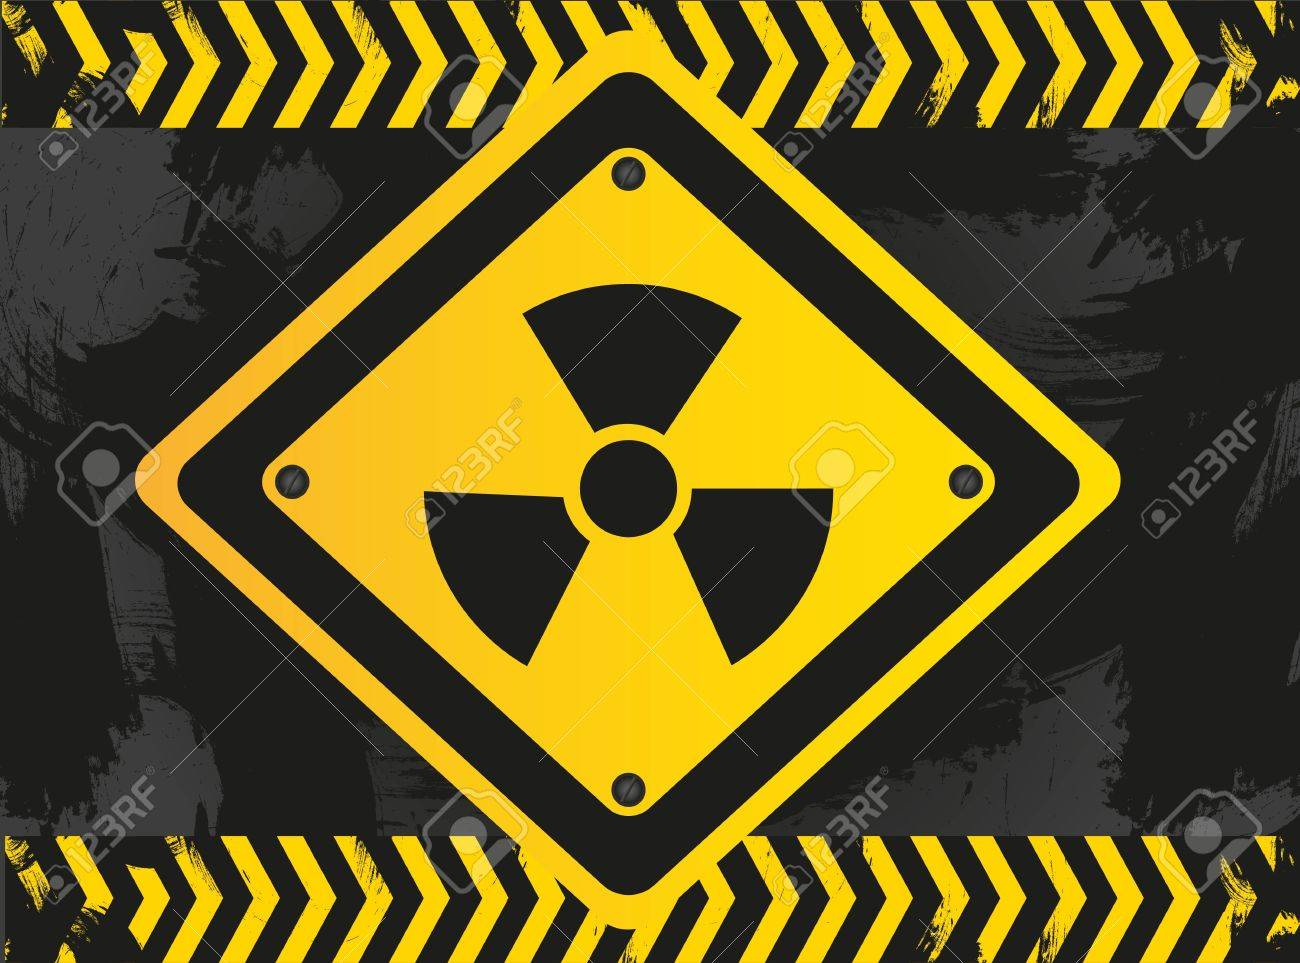 biohazard sign on grunge background Stock Vector - 13650687